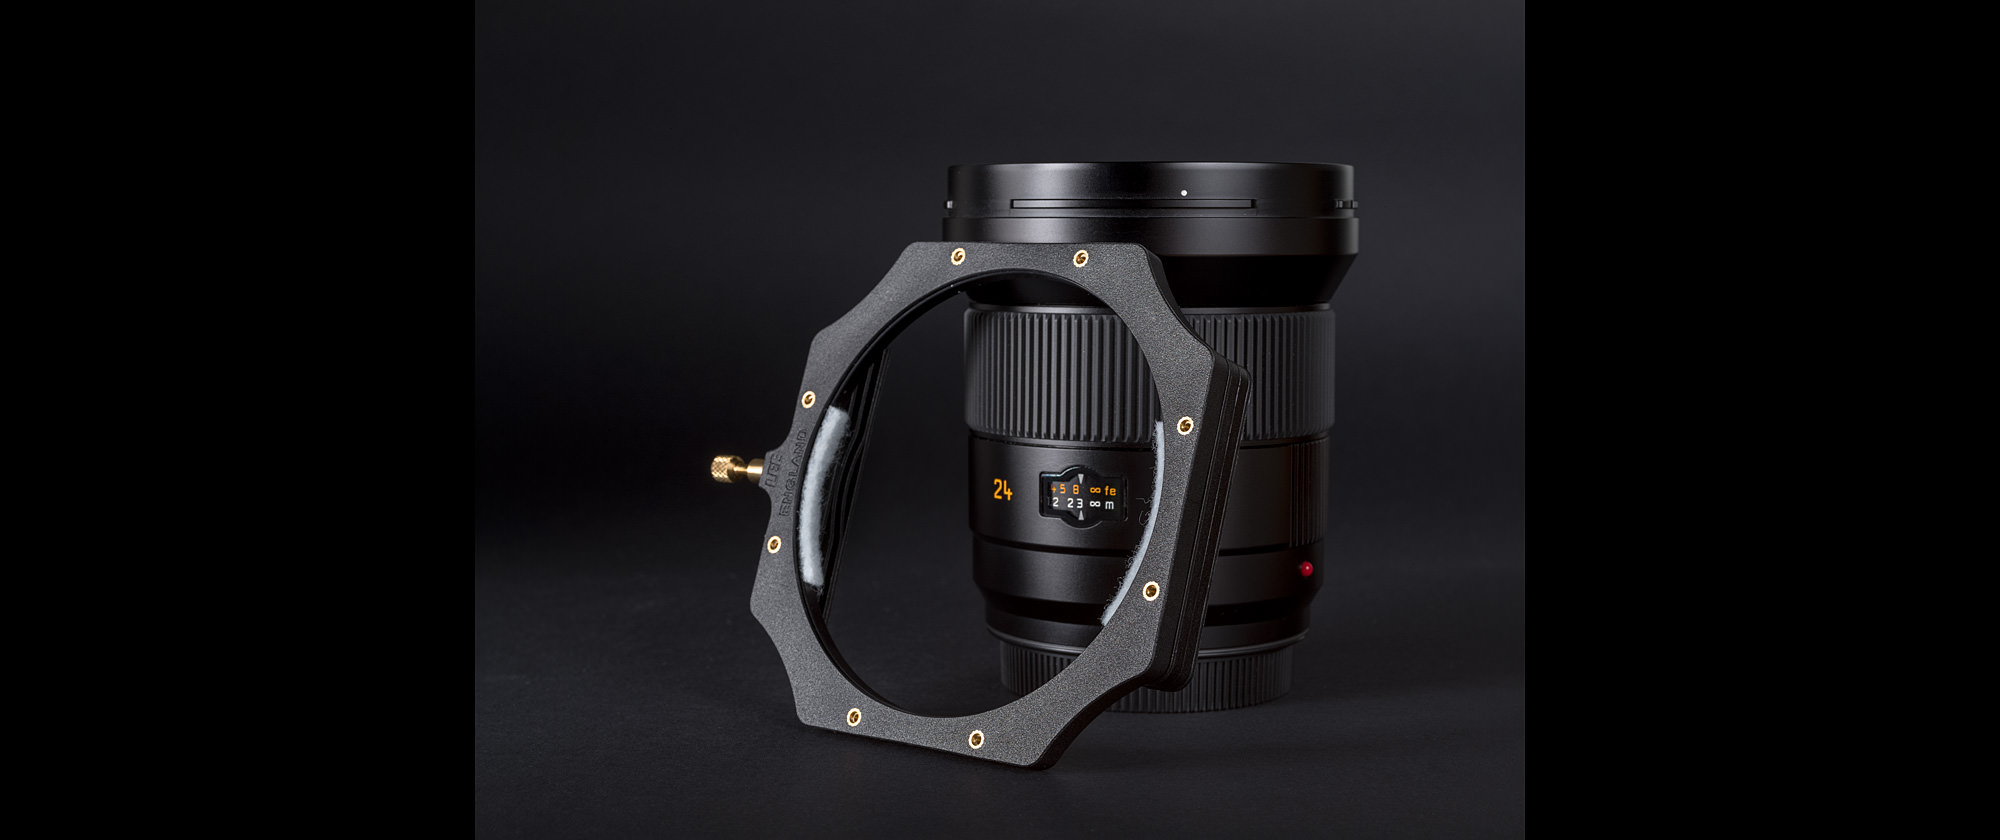 Leica Super-Elmar-S 24mm f/3.5 with modified filter holder